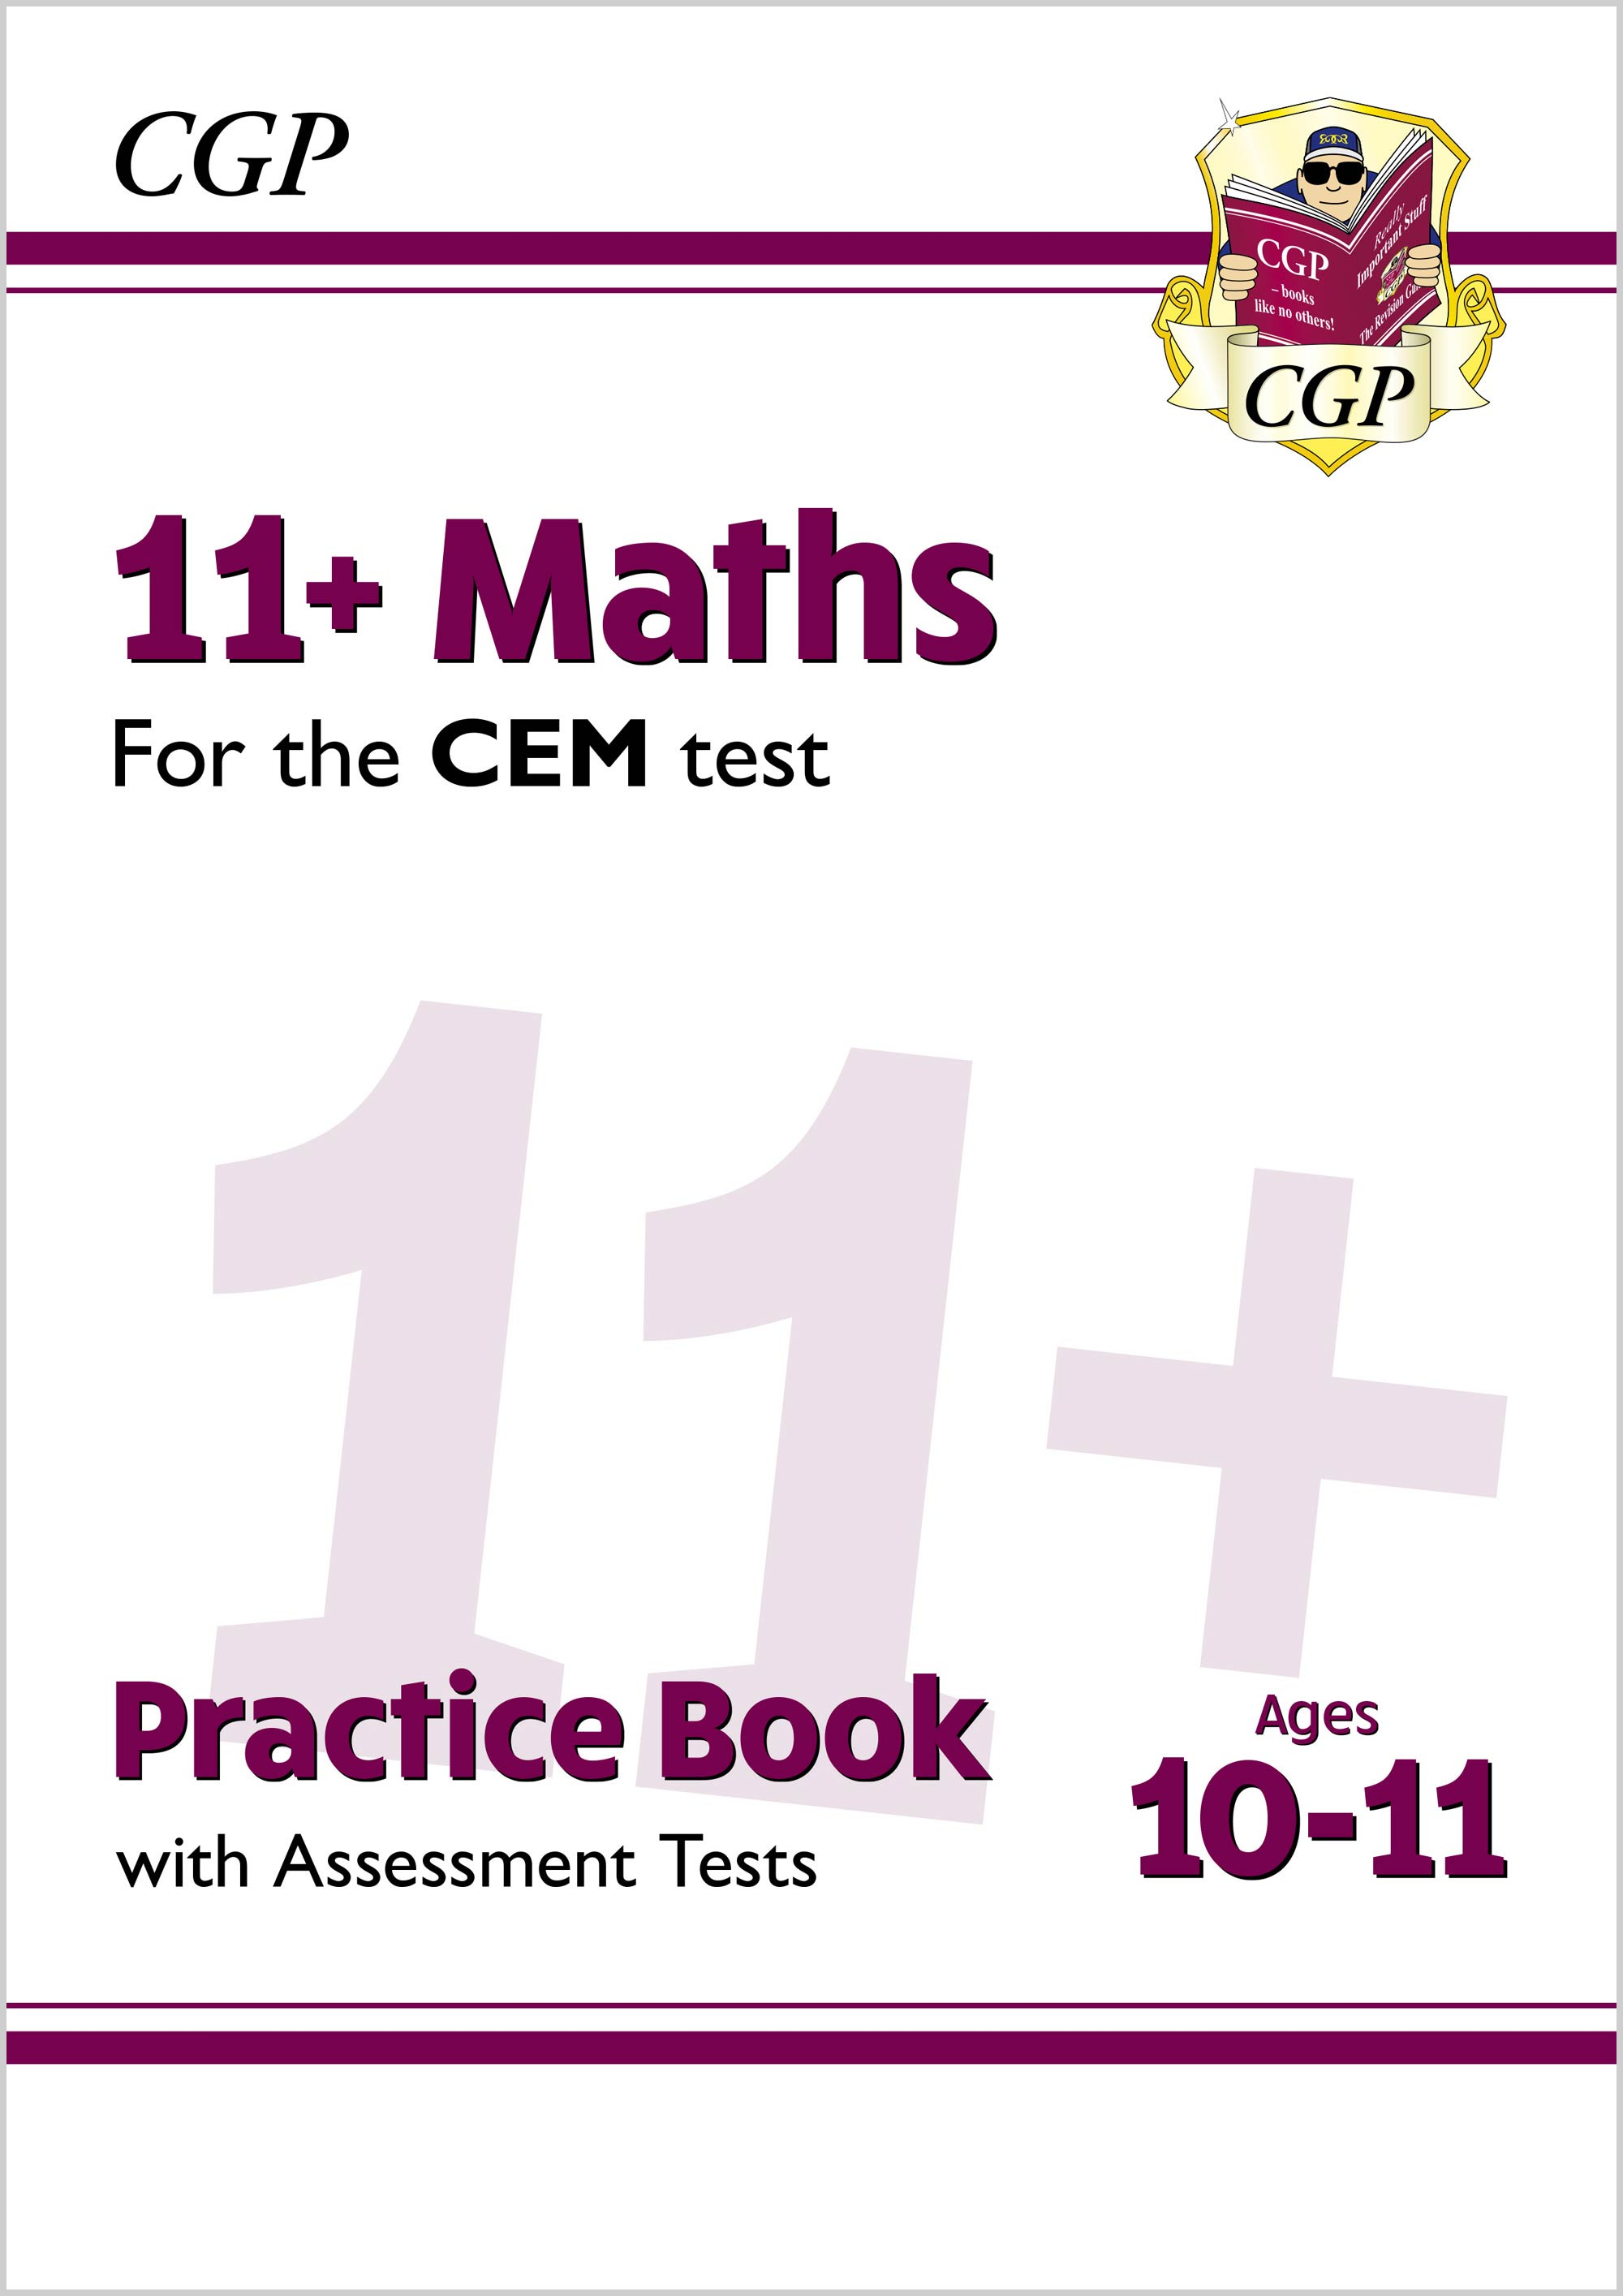 M6QDE2DK - New 11+ CEM Maths Practice Book & Assessment Tests - Ages 10-11 (with Online Edition)